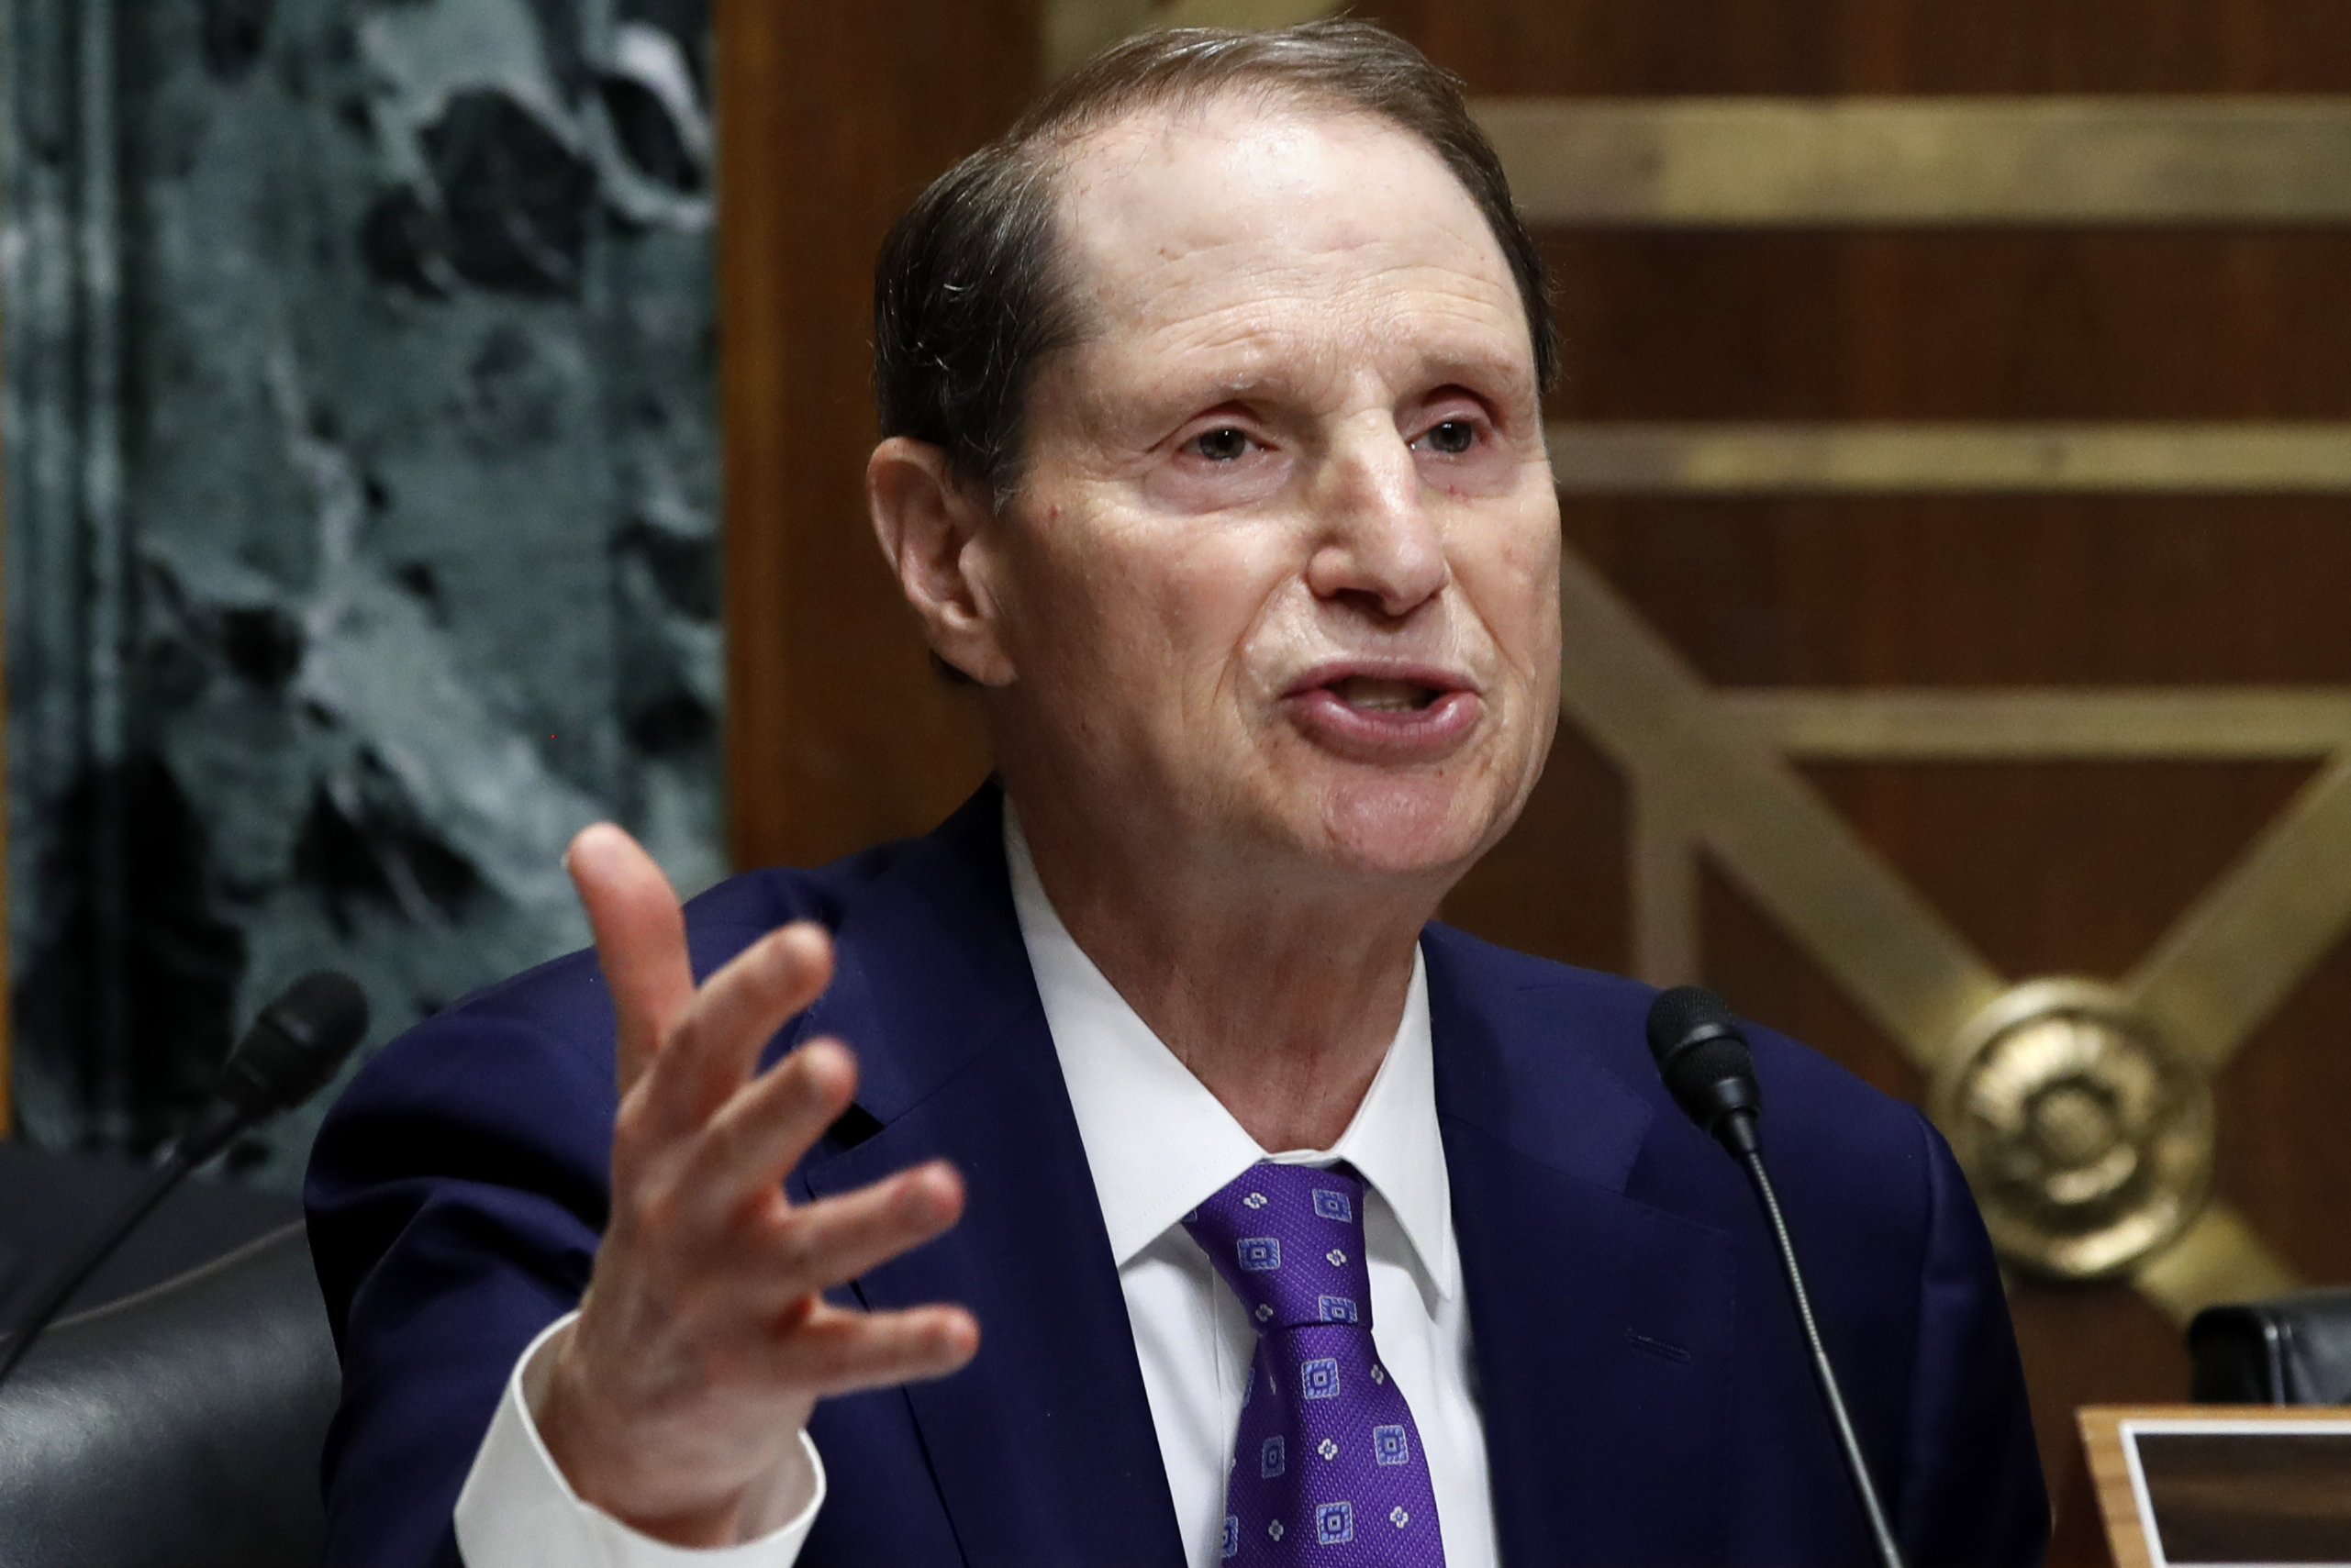 Ranking member of the Senate Finance Committee Sen. Ron Wyden, D-Ore., asks a question of Secretary of Commerce Wilbur Ross during a committee hearing on tariffs, on Capitol Hill, June 20, 2018, in Washington.